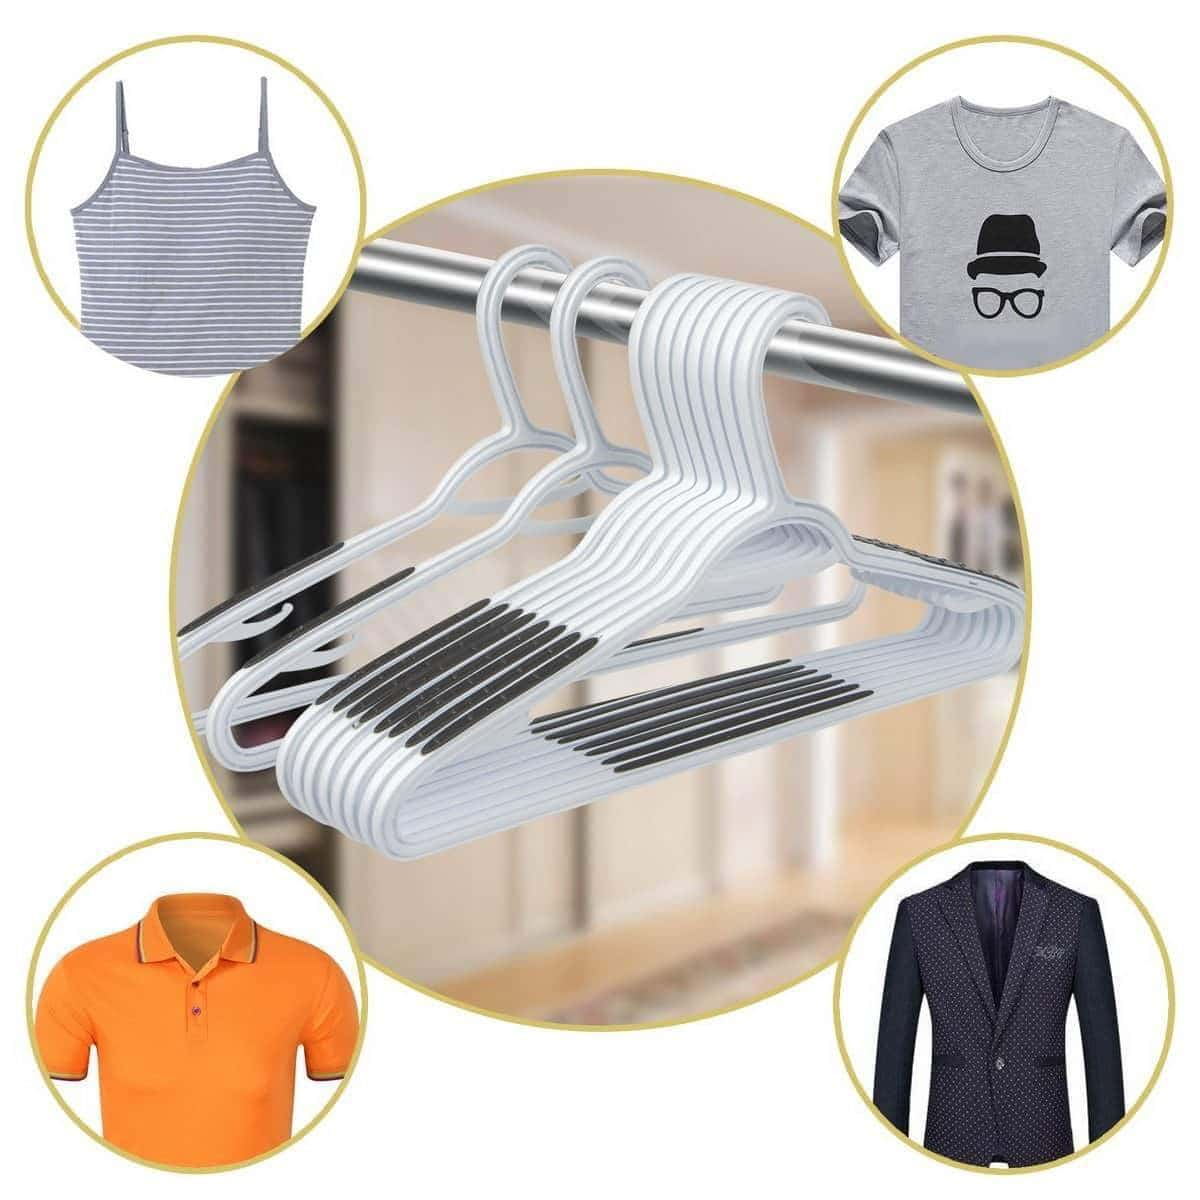 Top timmy plastic hangers 40 pack heavy duty clothes hangers with built in grip non slip pads space saving super lightweight organizer for closet wardrobe perfect for blouses shirts and morewhite grey